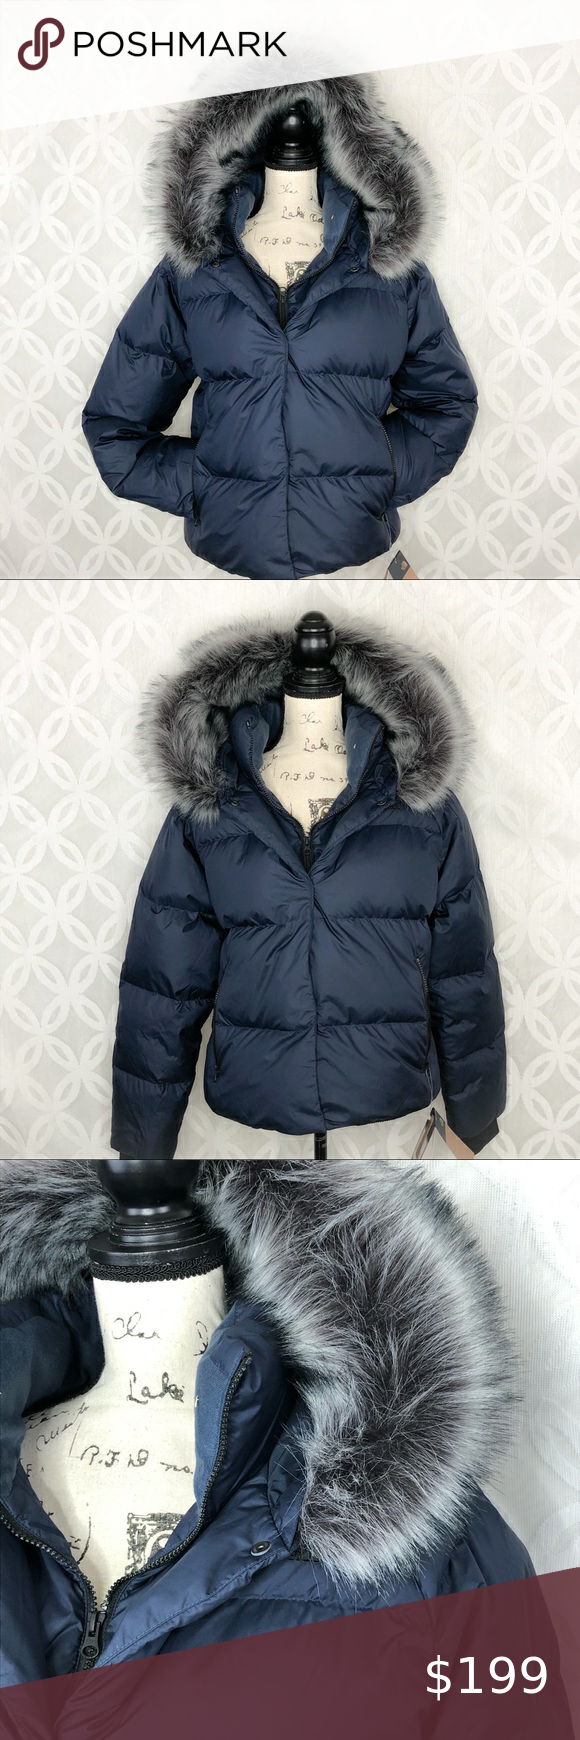 The North Face Dealio Down Crop Jacket Nwt Crop Jacket Clothes Design Fashion Trends [ 1740 x 580 Pixel ]